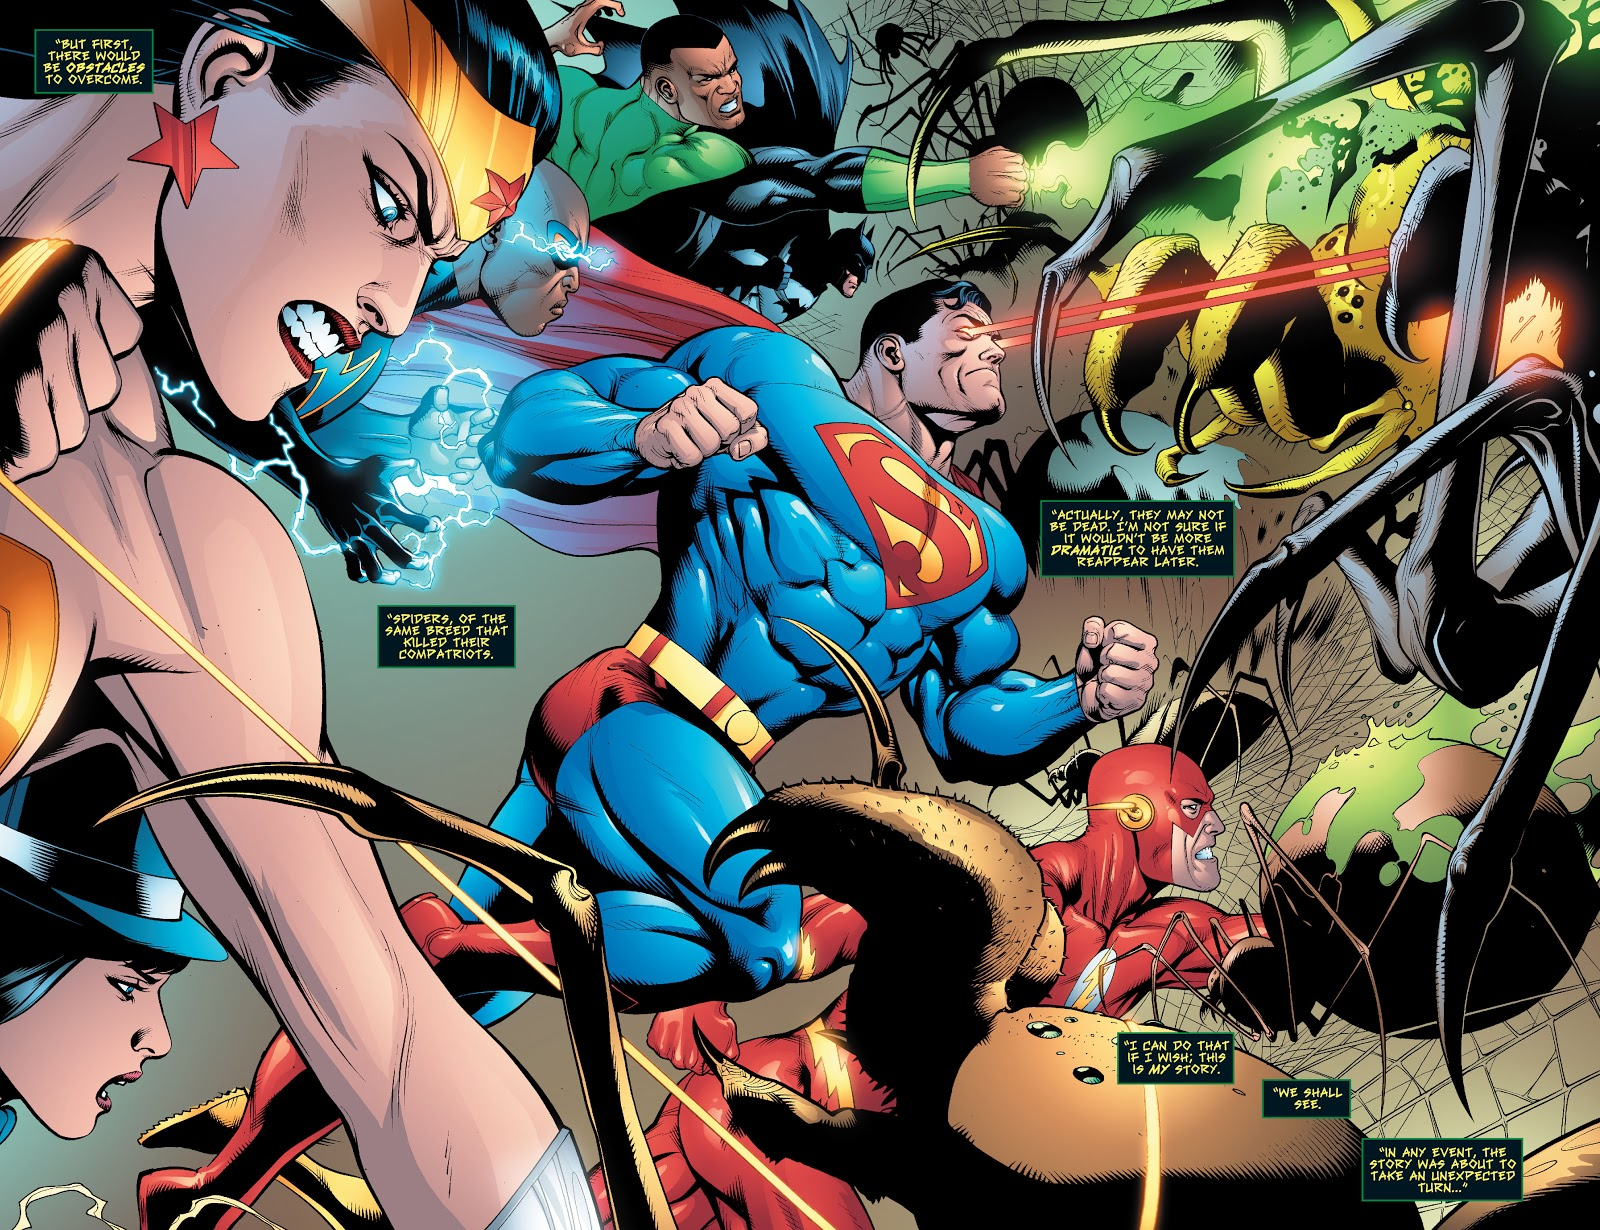 From - Justice League of America Vol. 2 #25